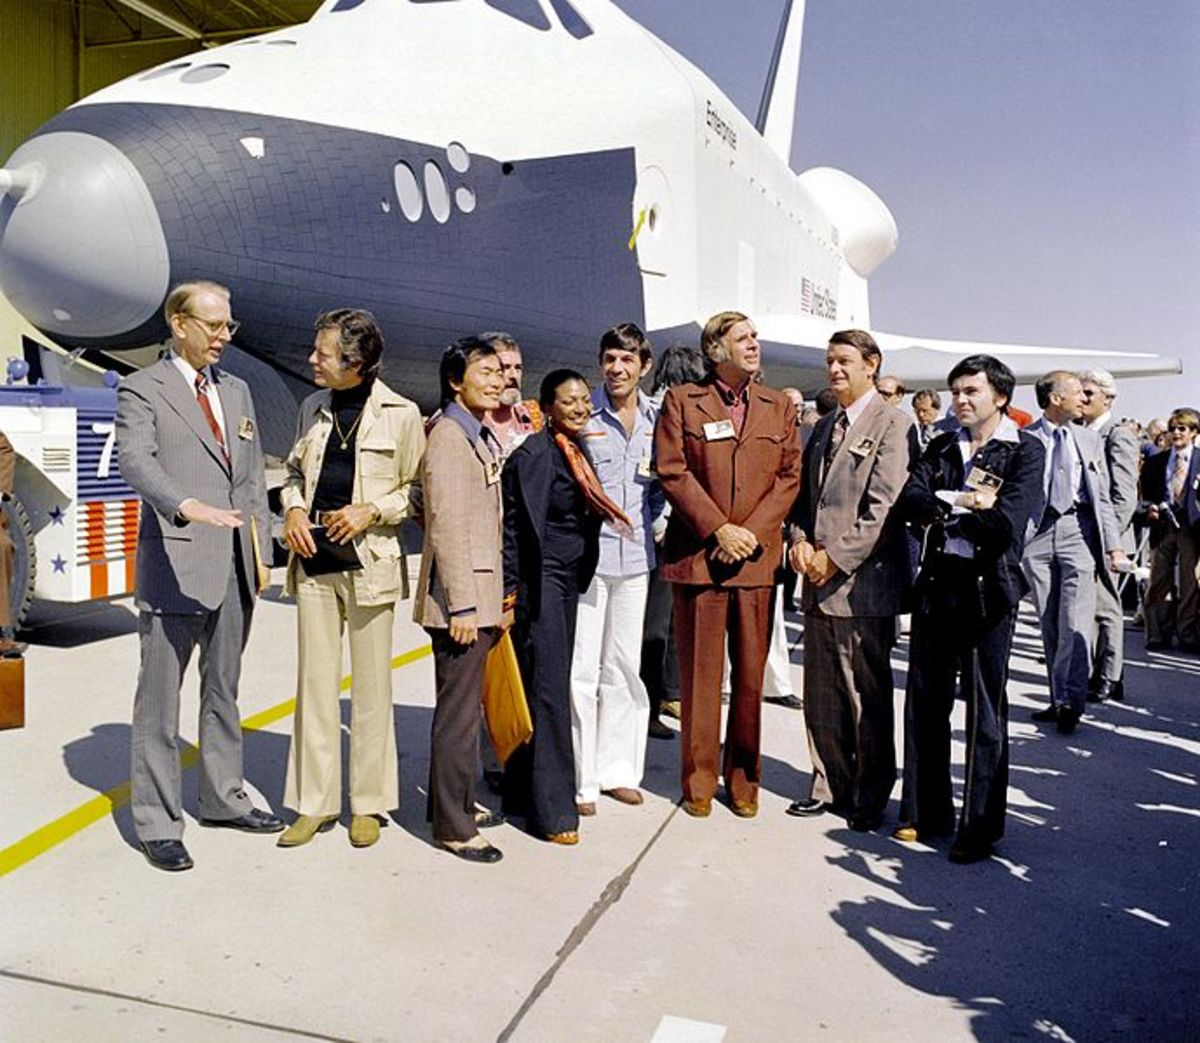 Star Trek (R) and the Shuttle Enterprise (public domain).